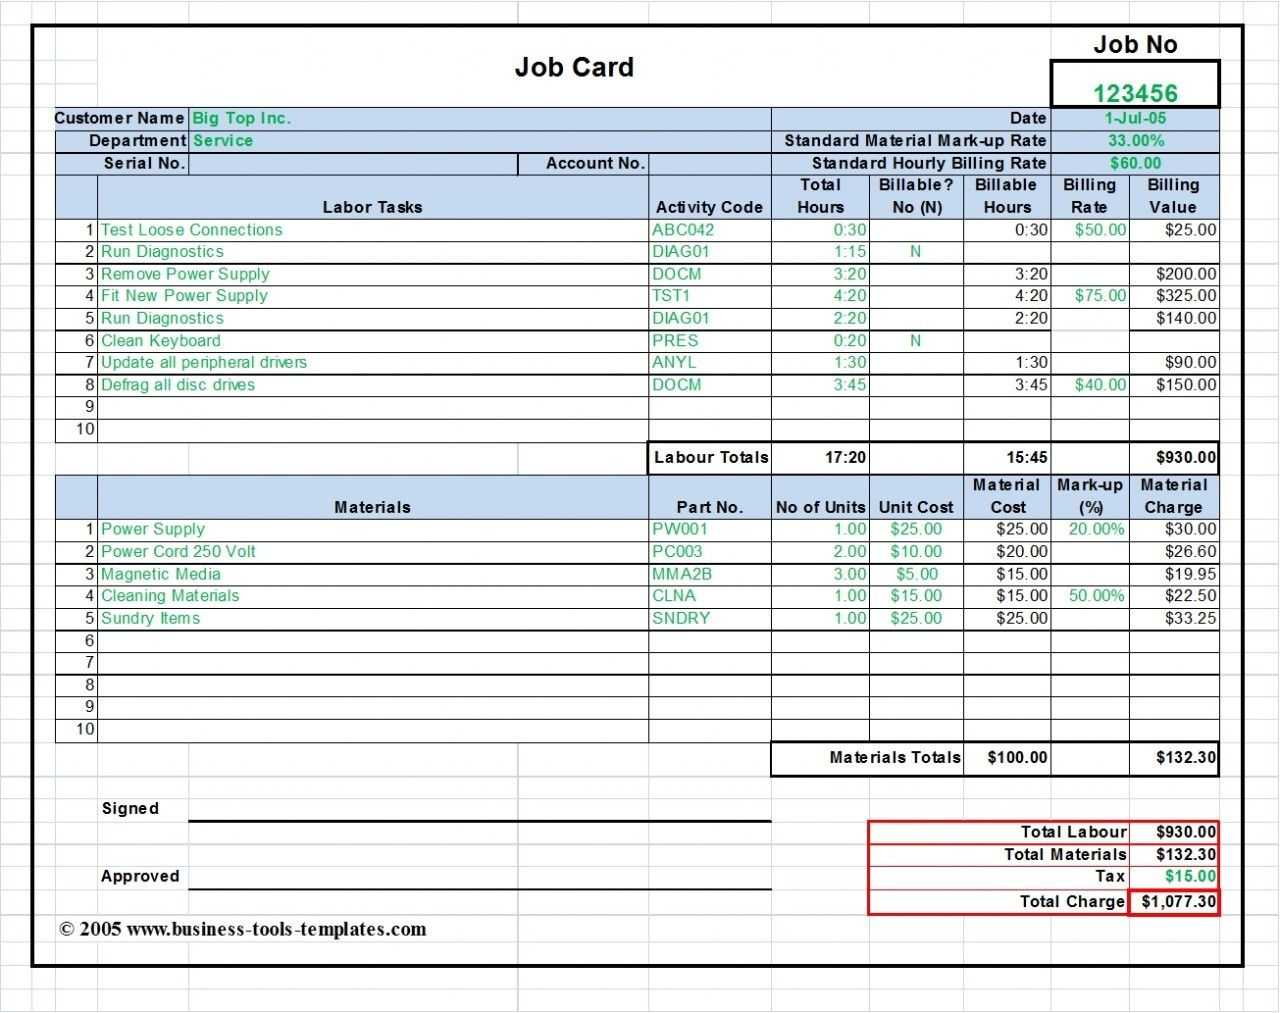 Workshop Job Card Template Excel, Labor & Material Cost within Rate Card Template Word